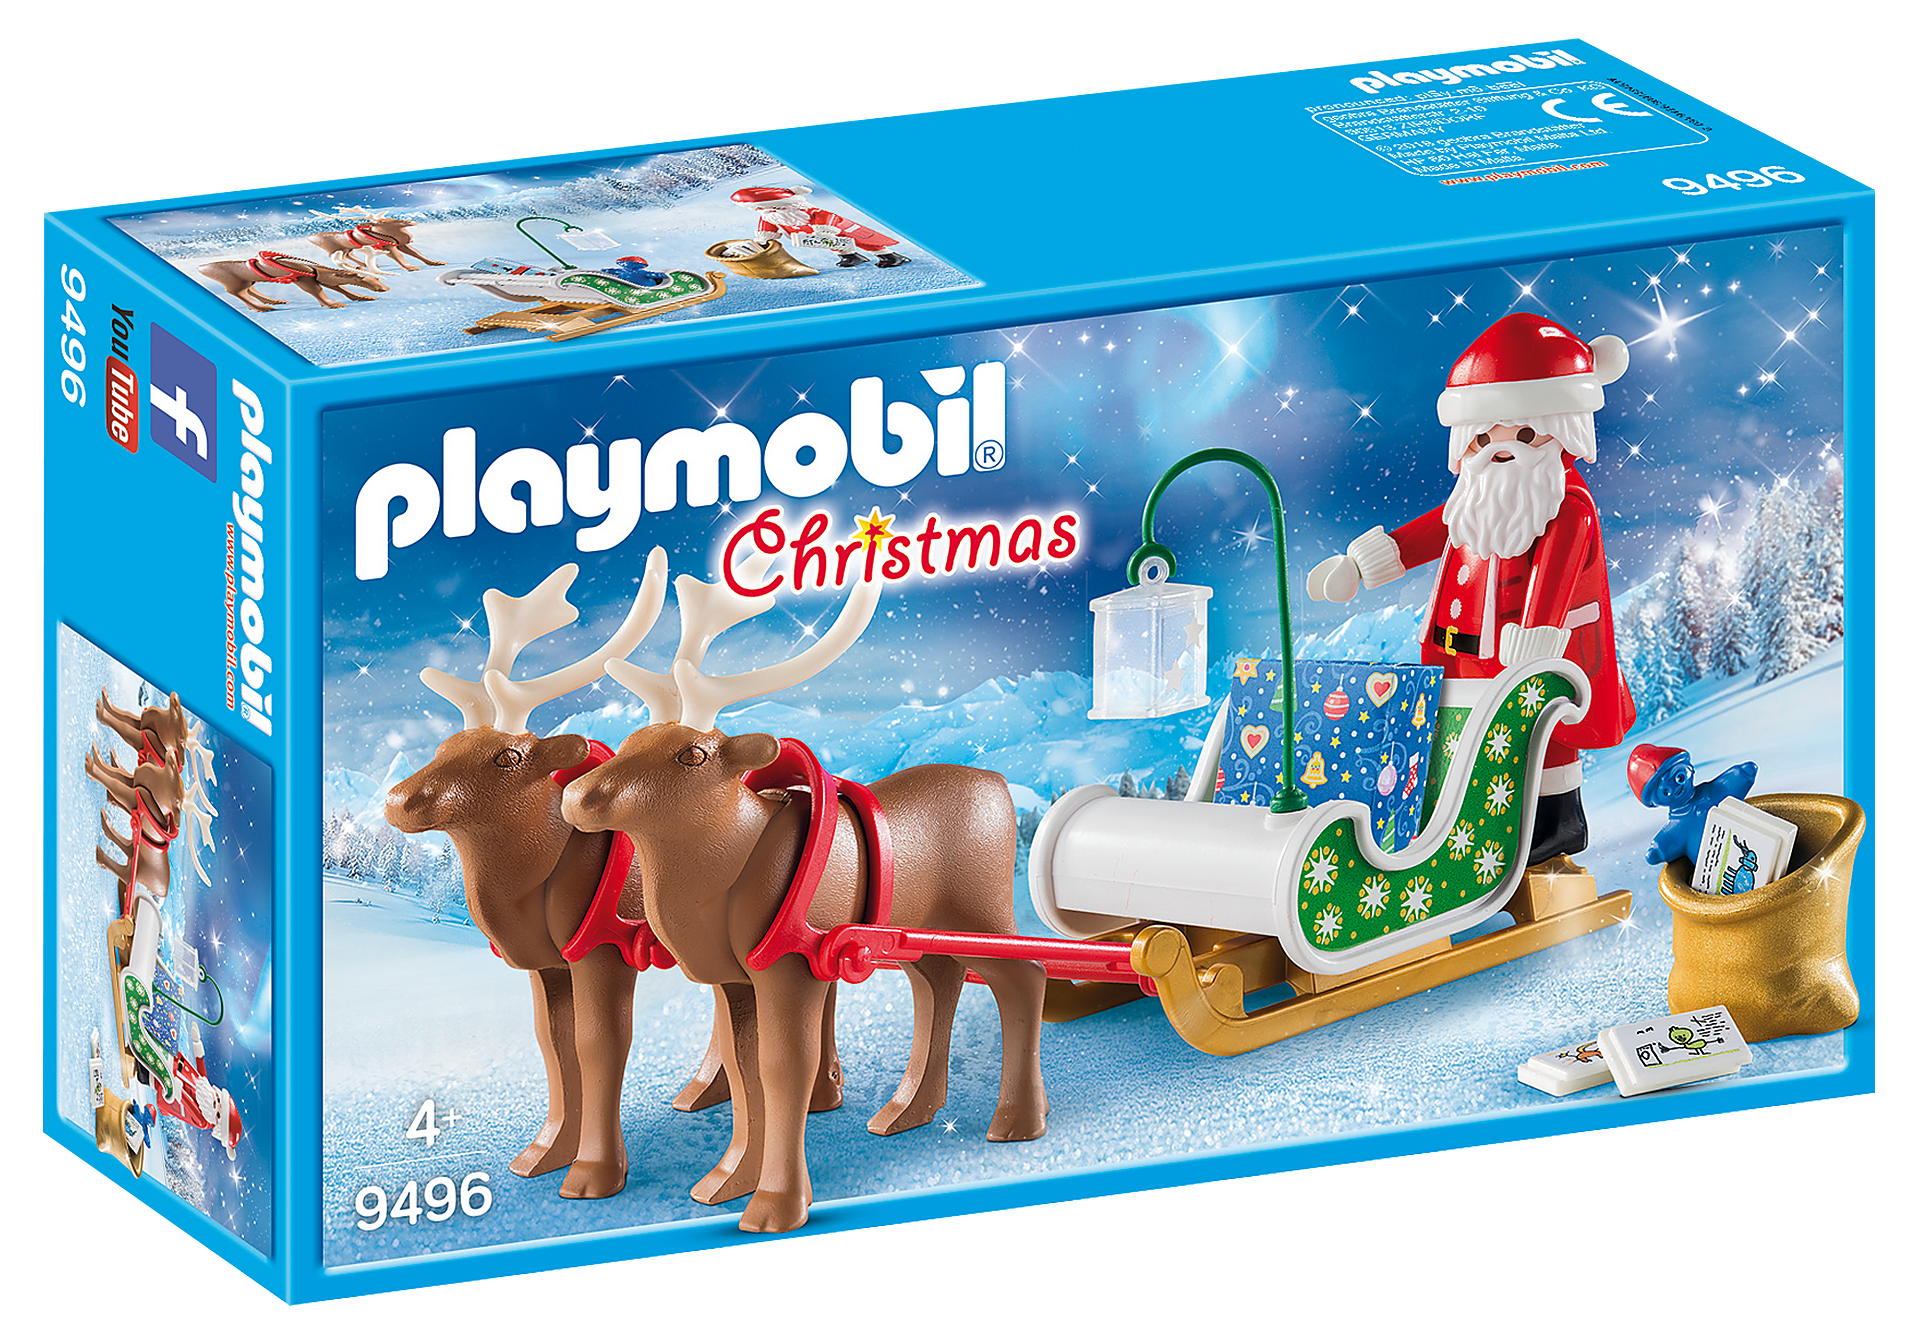 http://media.playmobil.com/i/playmobil/9496_product_box_front/Trenó do Pai Natal com Rena